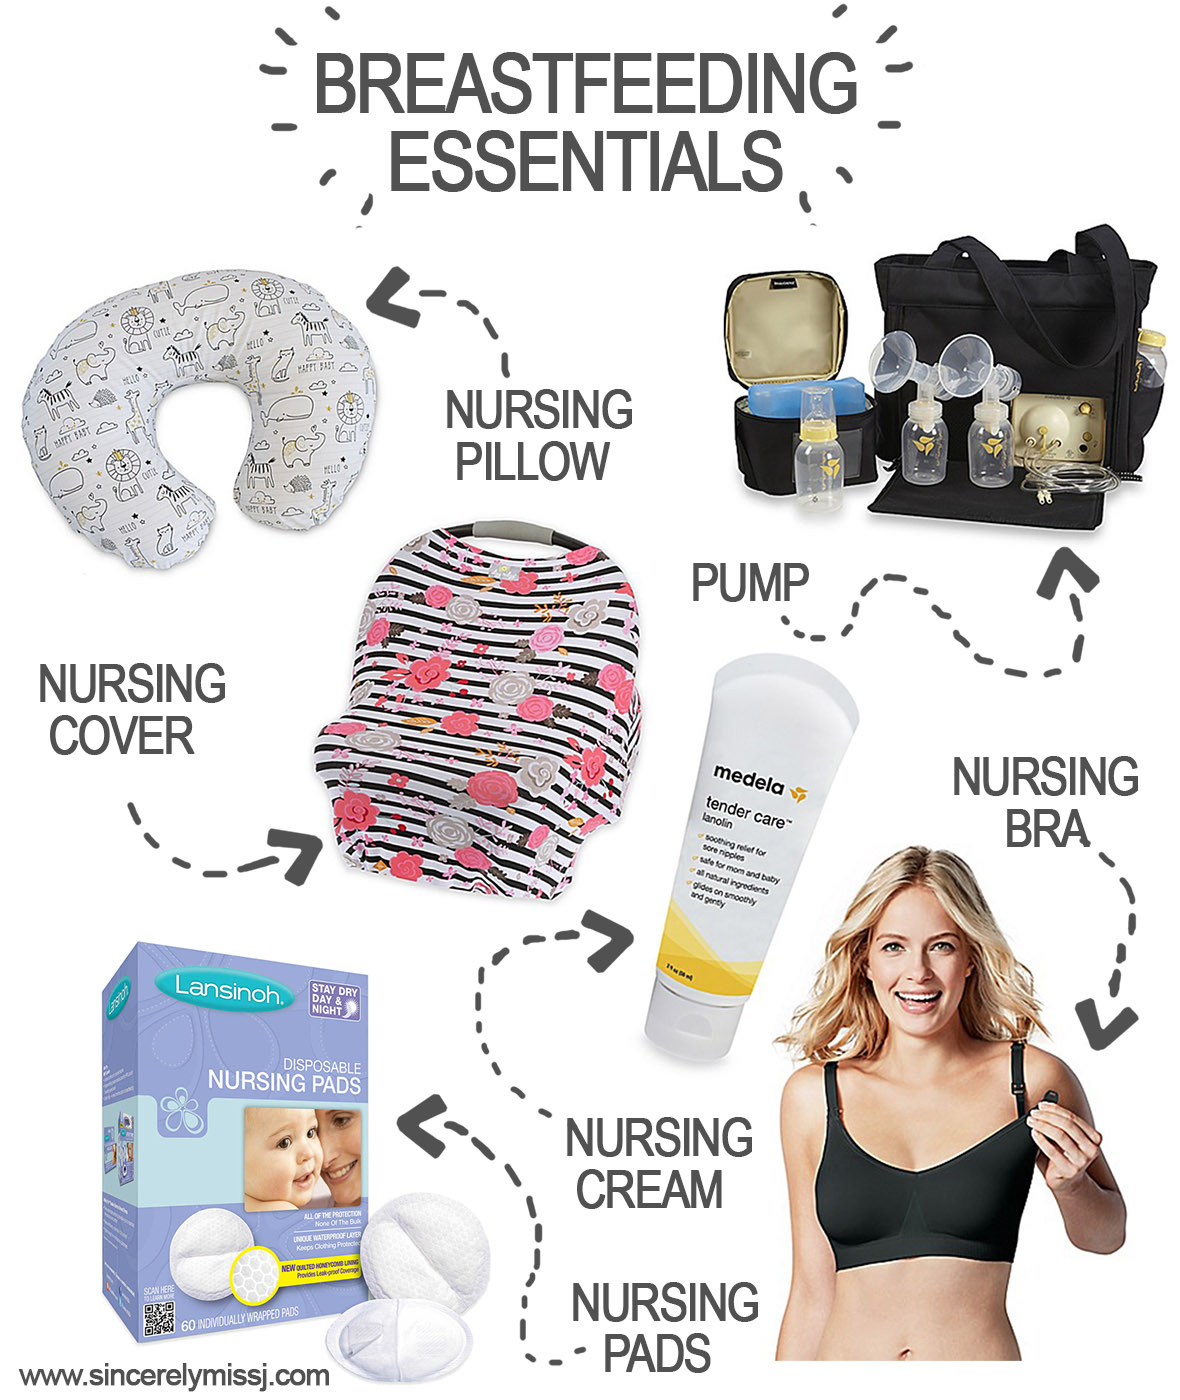 Breastfeeding Essentials for Nursing Moms